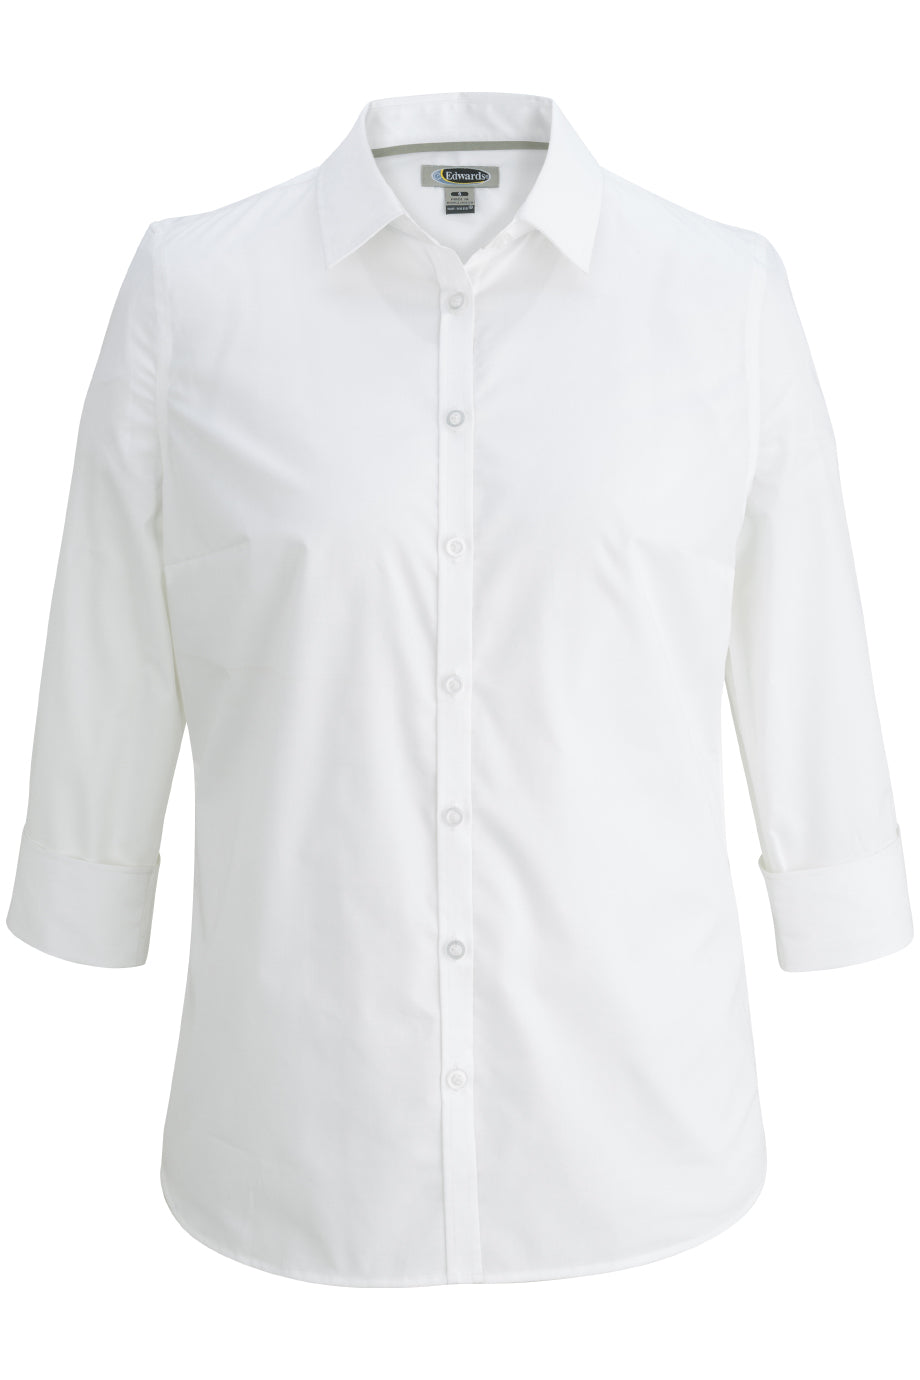 Edwards Ladies 3/4 Sleeve Stretch Broadcloth Shirt